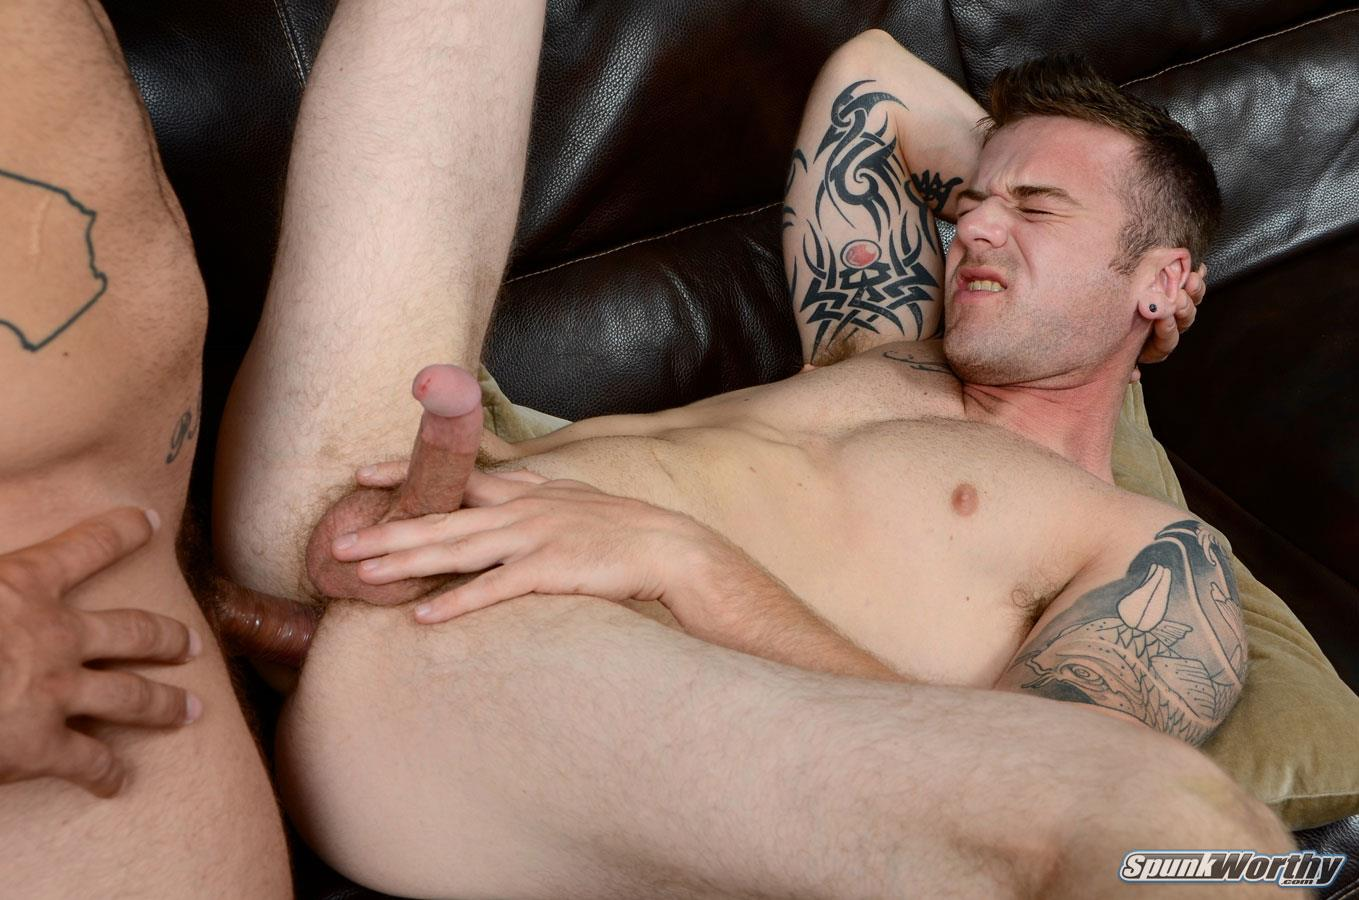 SpunkWorthy Nicholas and Scotty Beefy Muscle Straight Marine Fucks First Man Ass Amateur Gay Porn 16 Straight Beefy Muscle Marine Fucks His First Man Ass